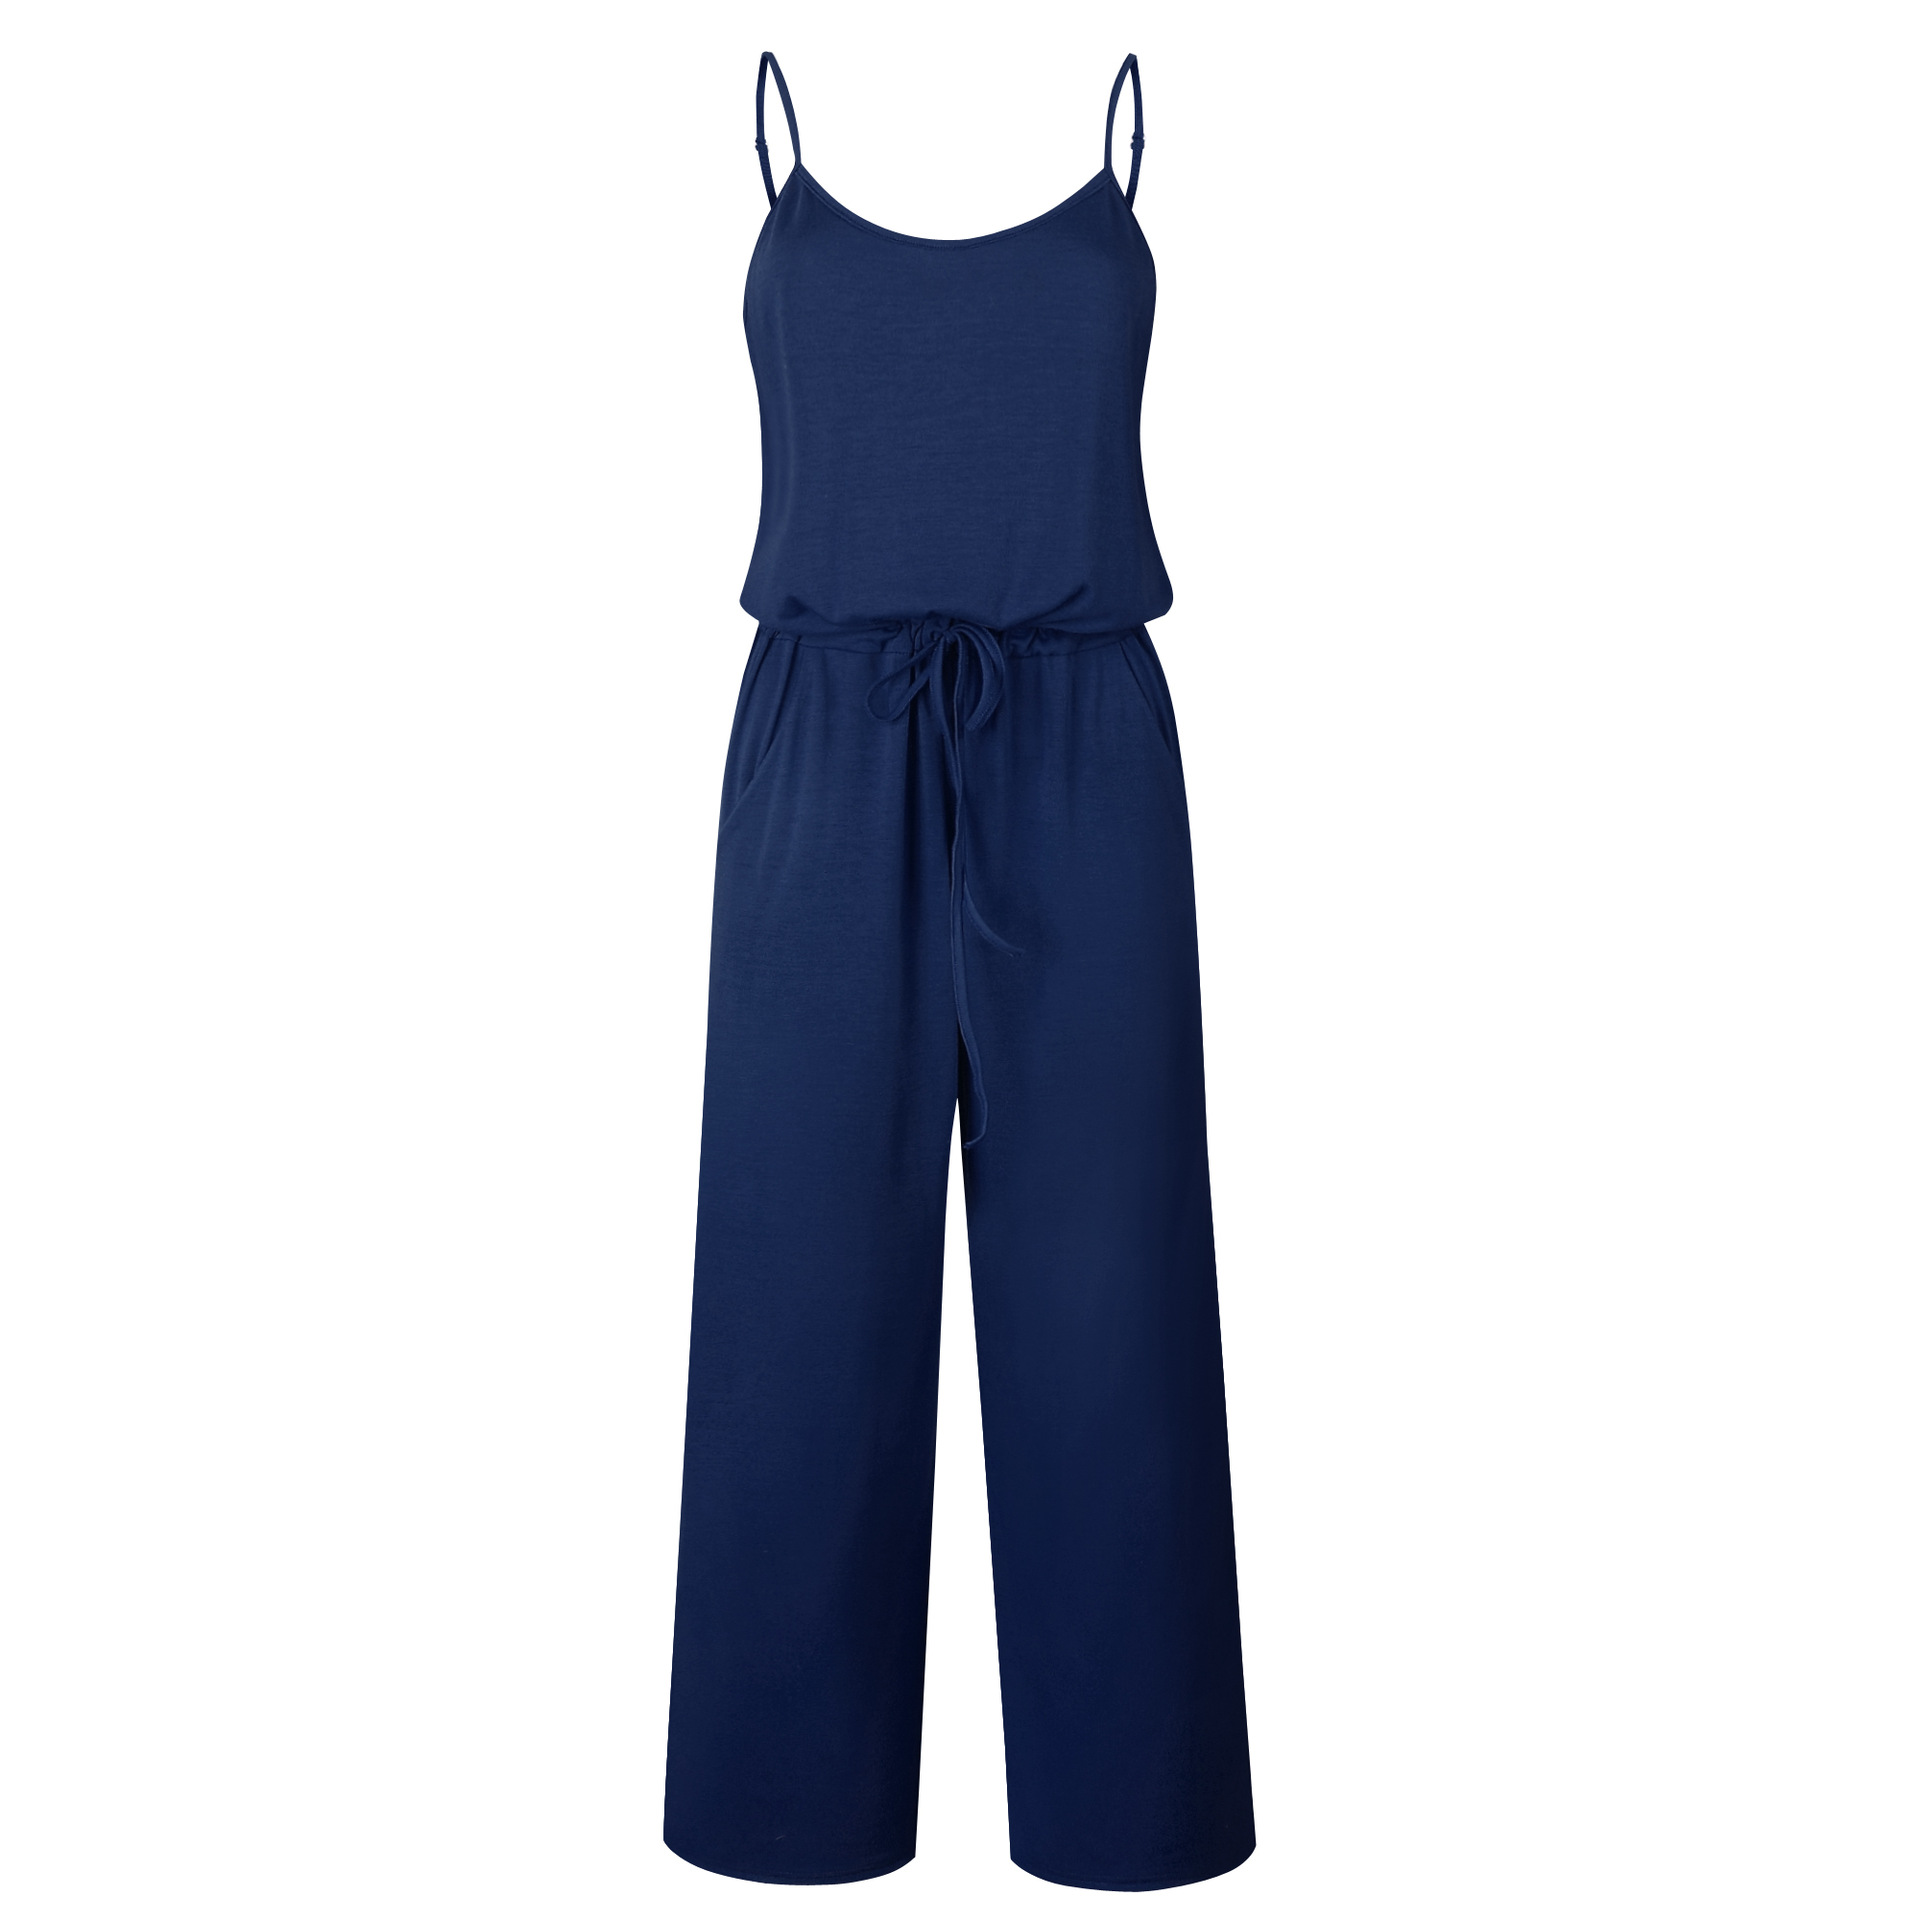 Spaghetti Strap Jumpsuit Women 2018 Summer Long Pants Floral Print Rompers Beach Casual Jumpsuits Sleeveless Sashes Playsuits 66